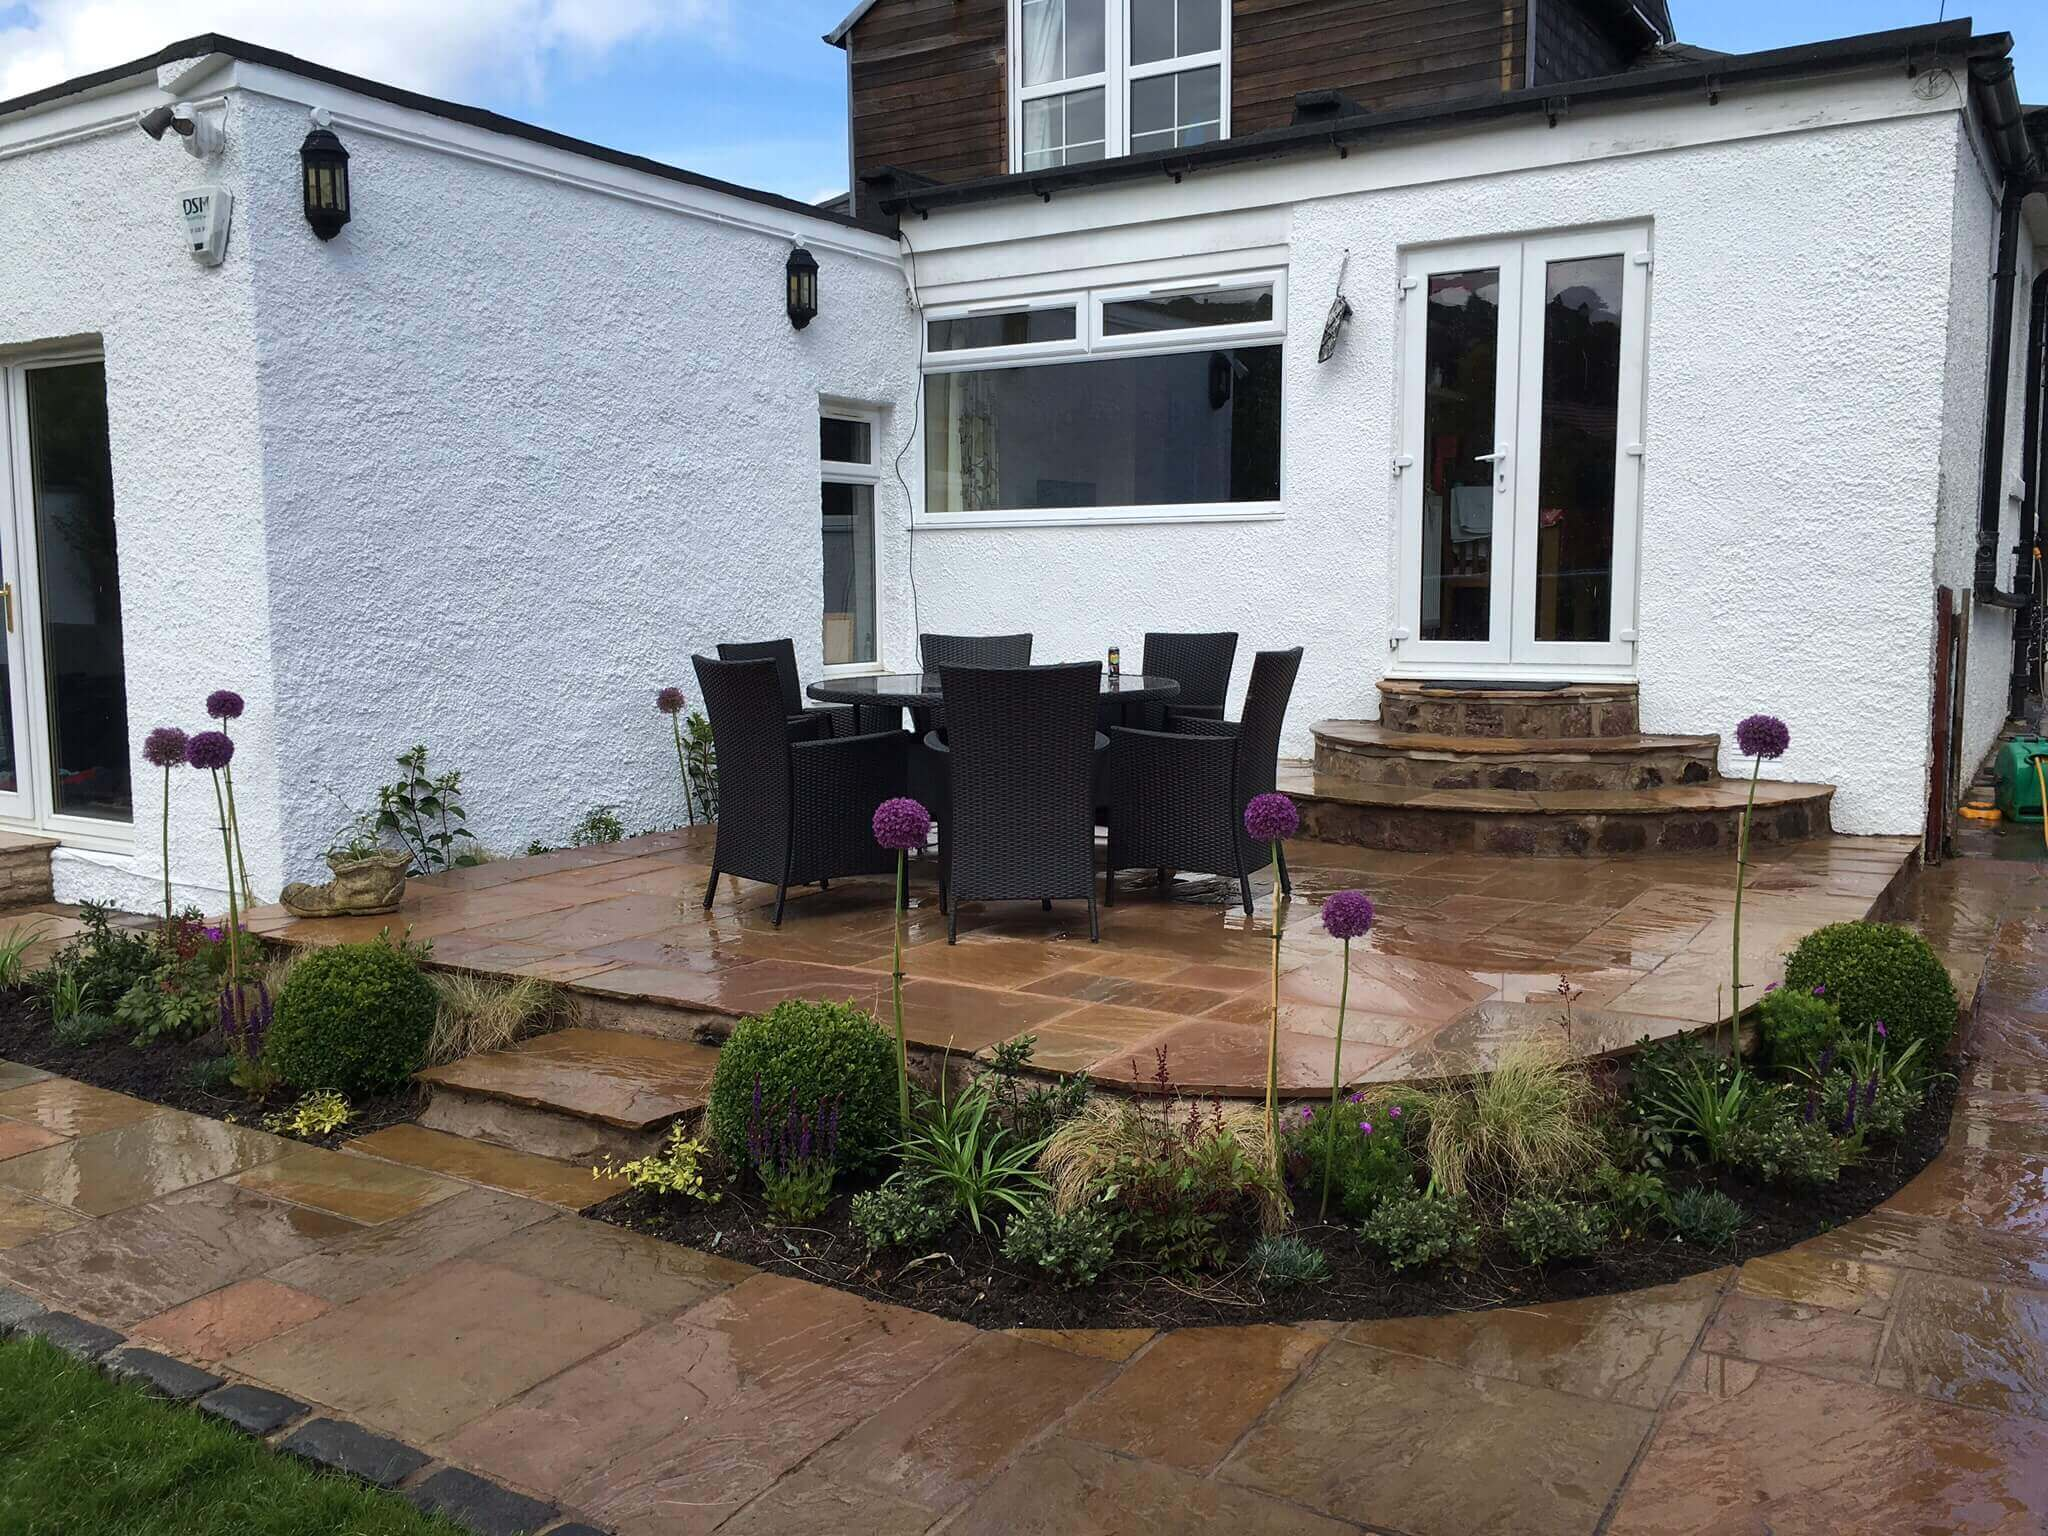 Tobermore Approved Paving Contractors   When you work with us, you receive work completed to above industry standards.   learn more